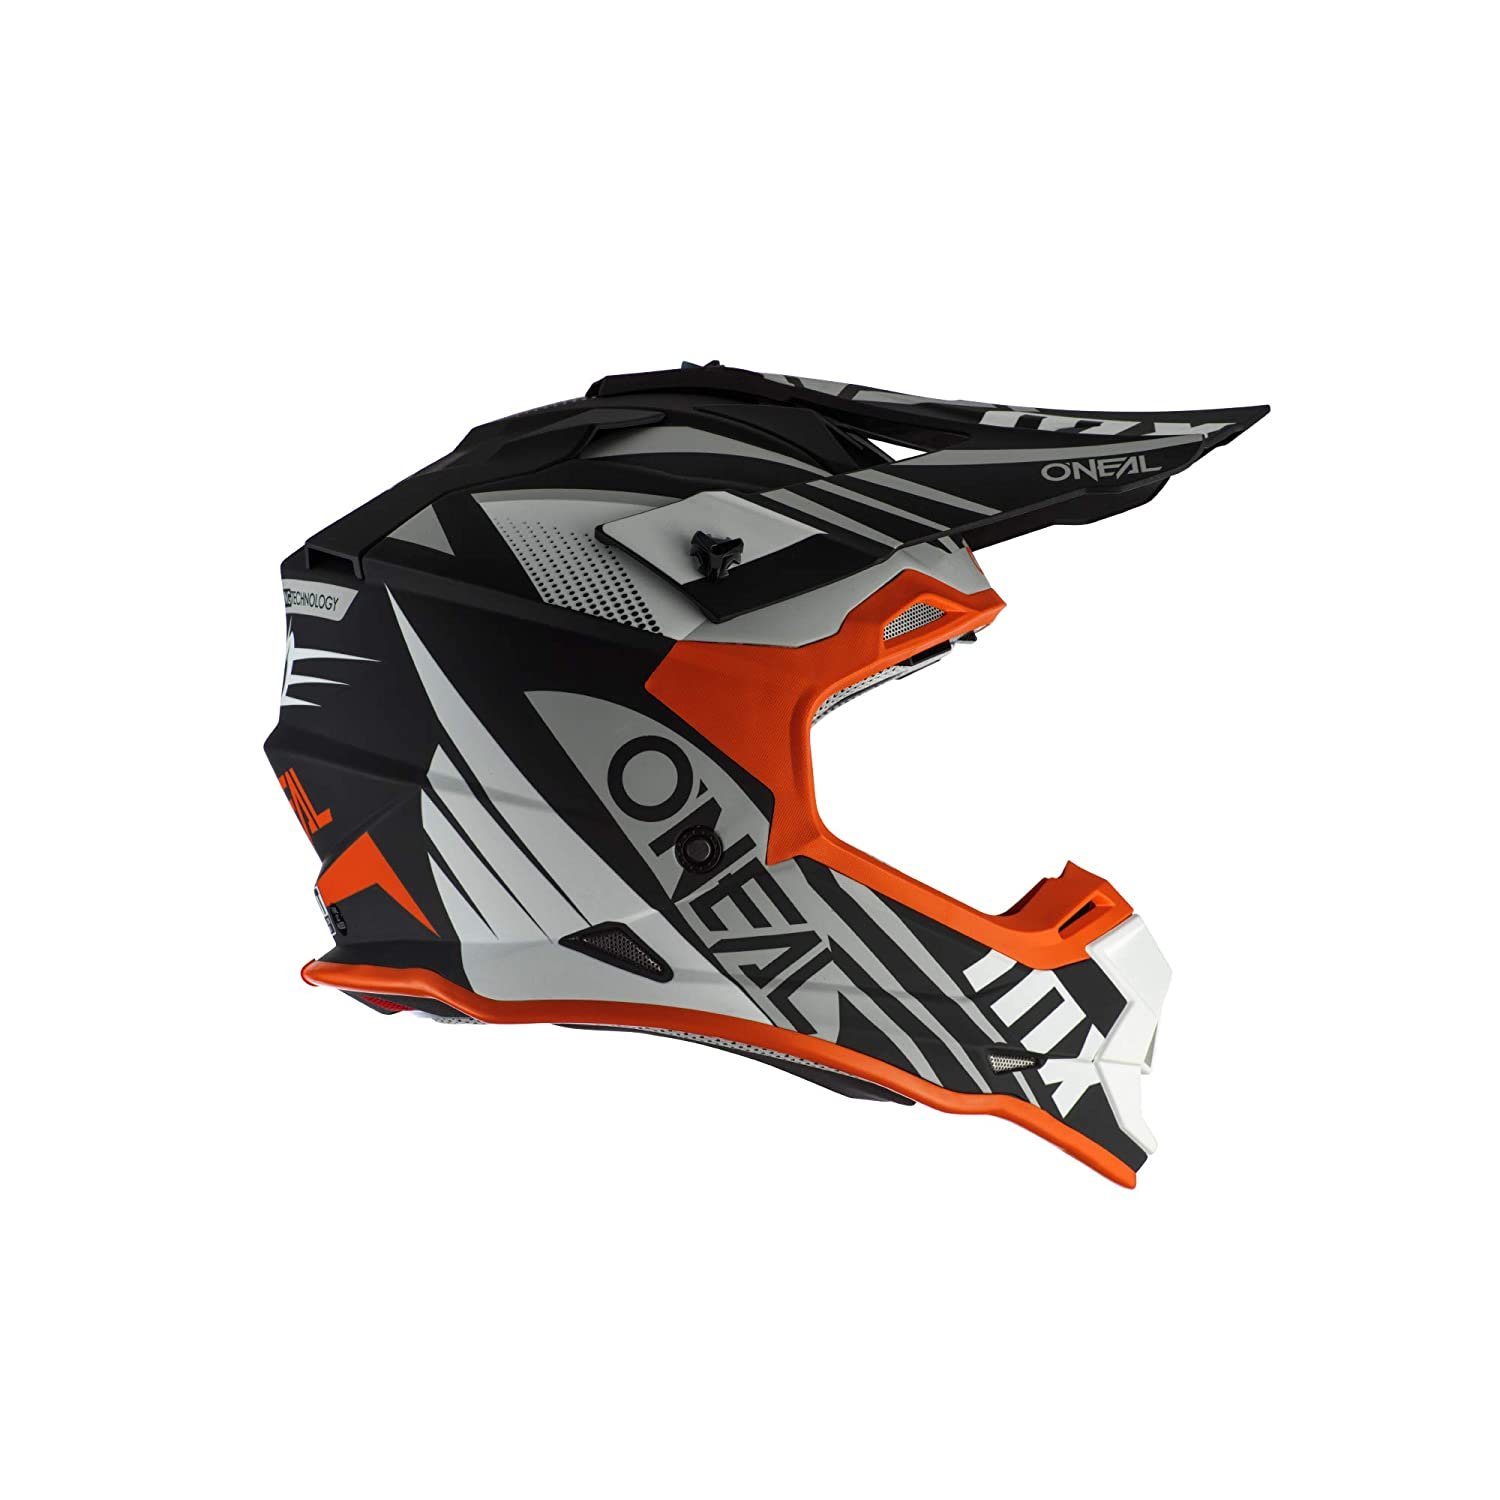 Black//White//Orange, M ONeal 2 Series Unisex-Adult Off-Road Helmet